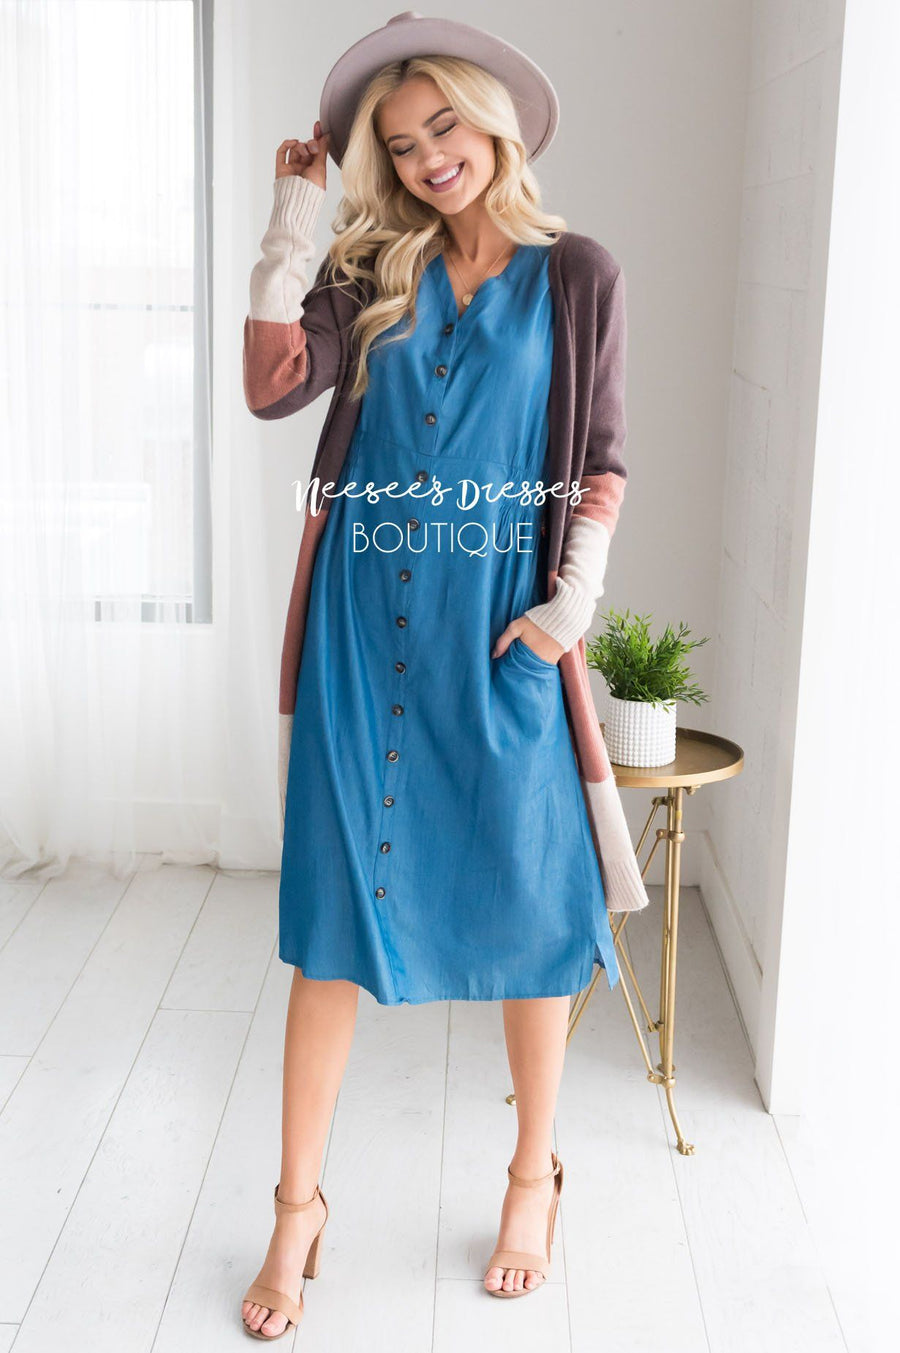 The Chara Denim Dress